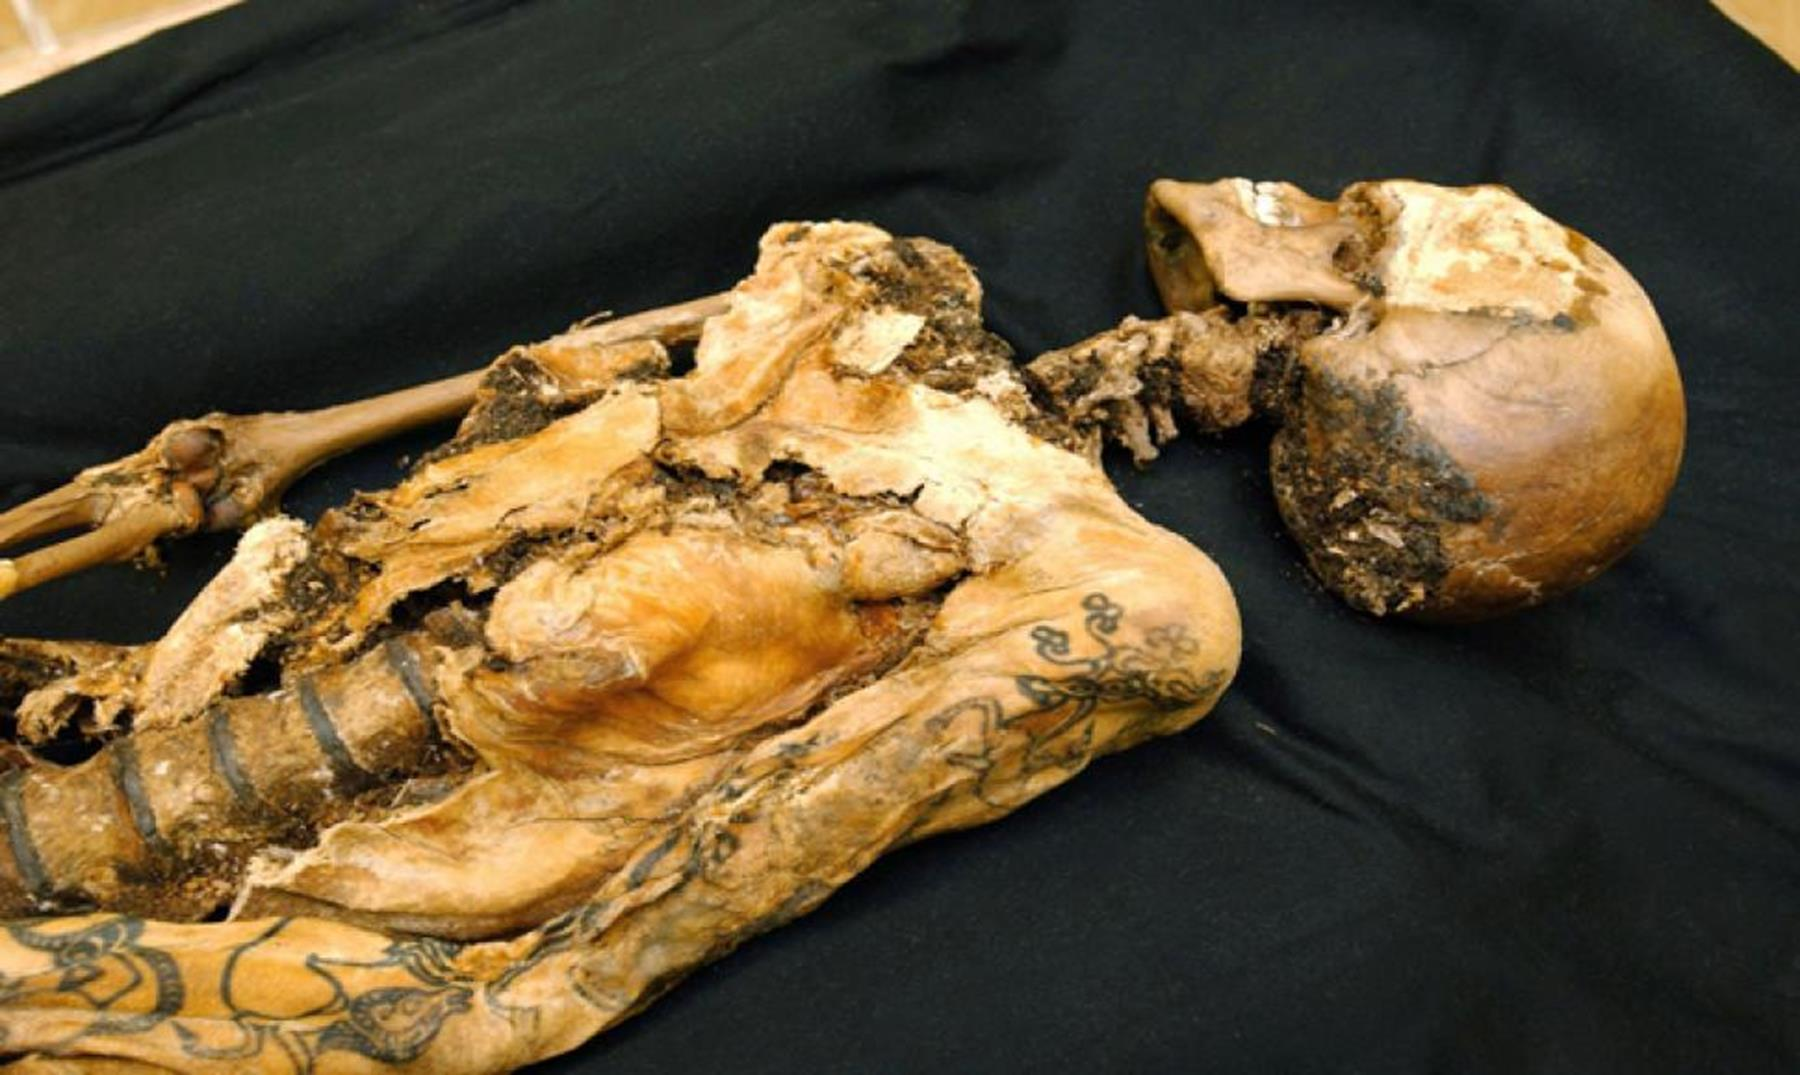 Tattooed Ukok Princess is one of the best preserved bodies in the world